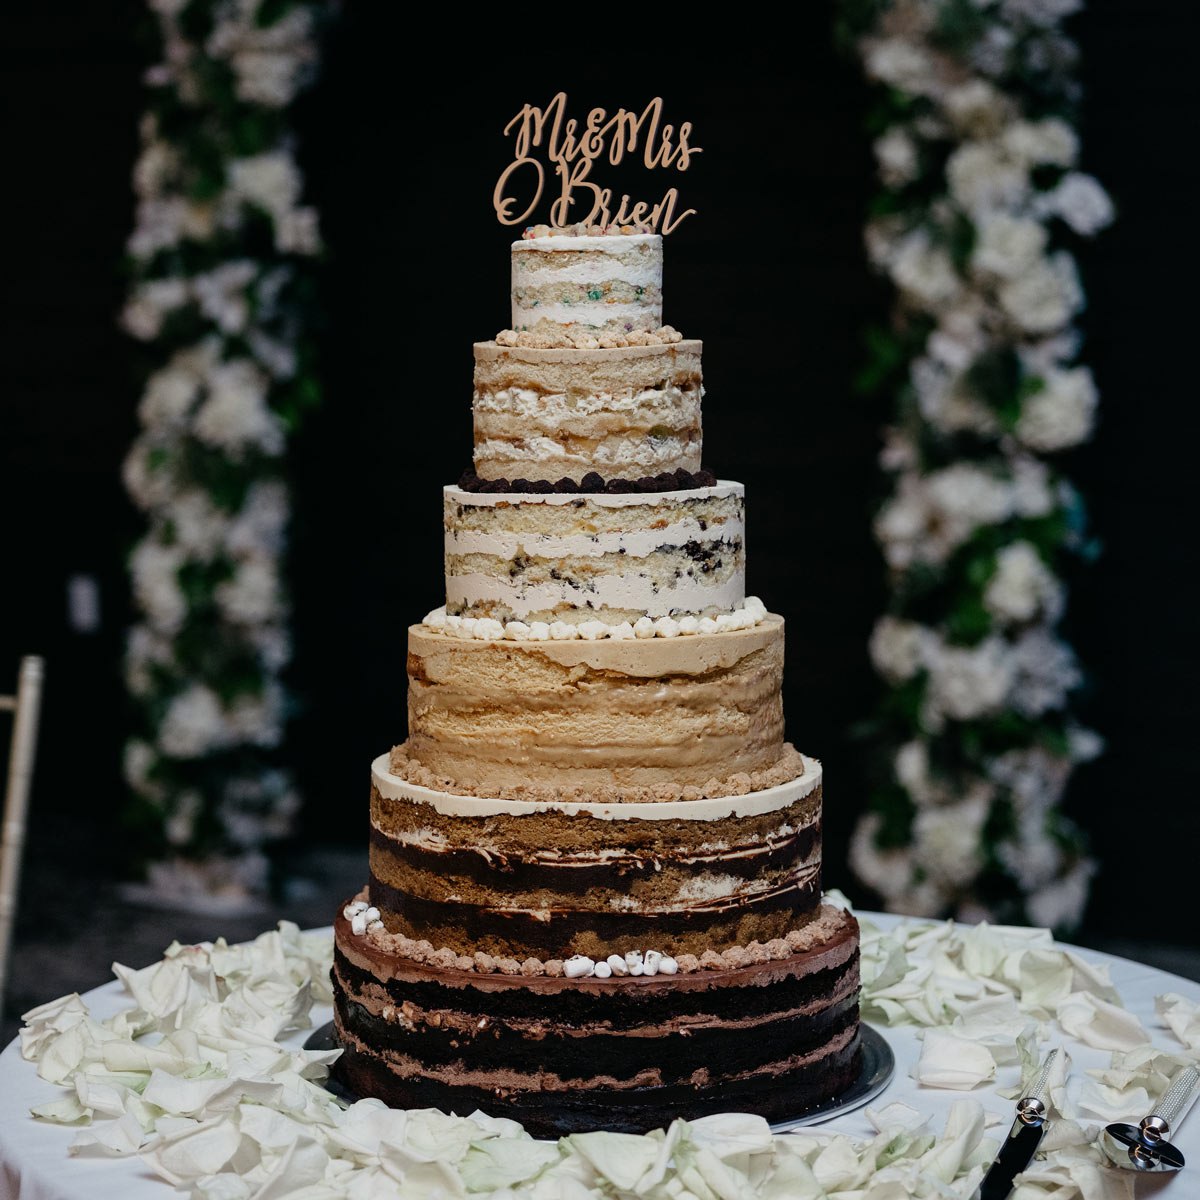 Milk bar bakery weddings 6 tier multi flavor junglespirit Images